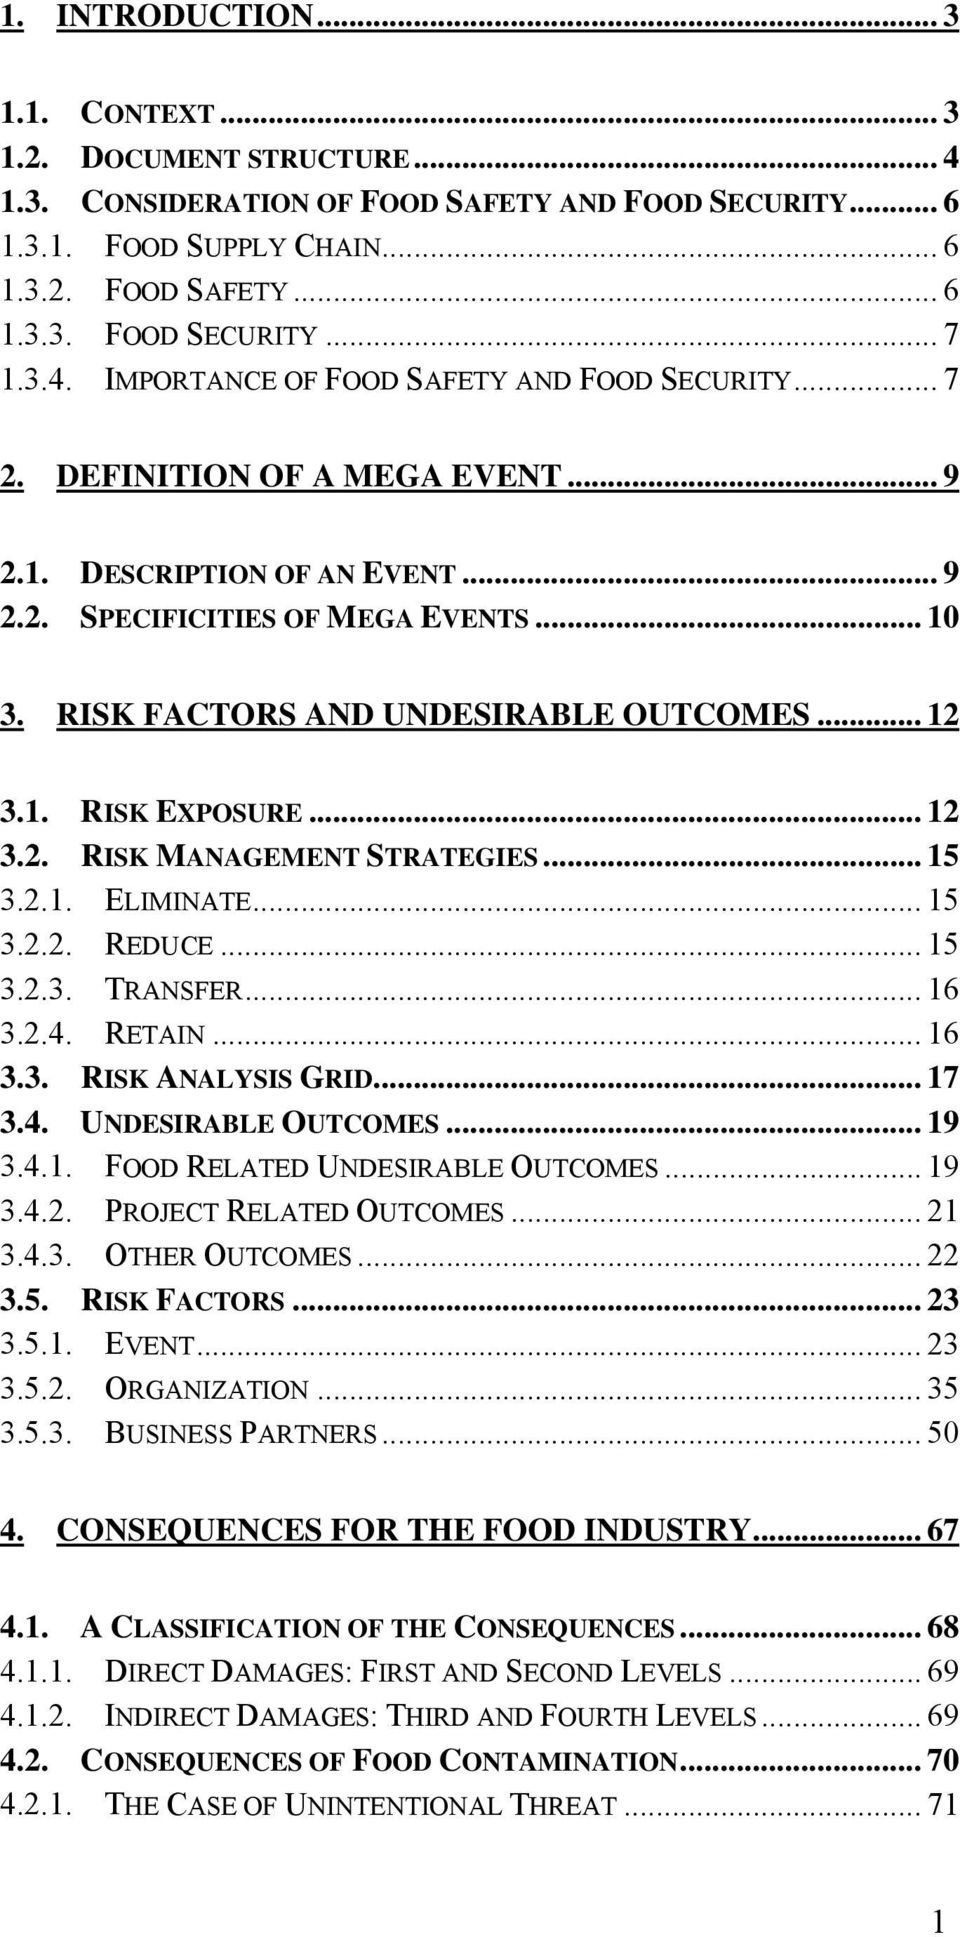 RISK FACTORS AND UNDESIRABLE OUTCOMES... 12 3.1. RISK EXPOSURE... 12 3.2. RISK MANAGEMENT STRATEGIES... 15 3.2.1. ELIMINATE... 15 3.2.2. REDUCE... 15 3.2.3. TRANSFER... 16 3.2.4. RETAIN... 16 3.3. RISK ANALYSIS GRID.